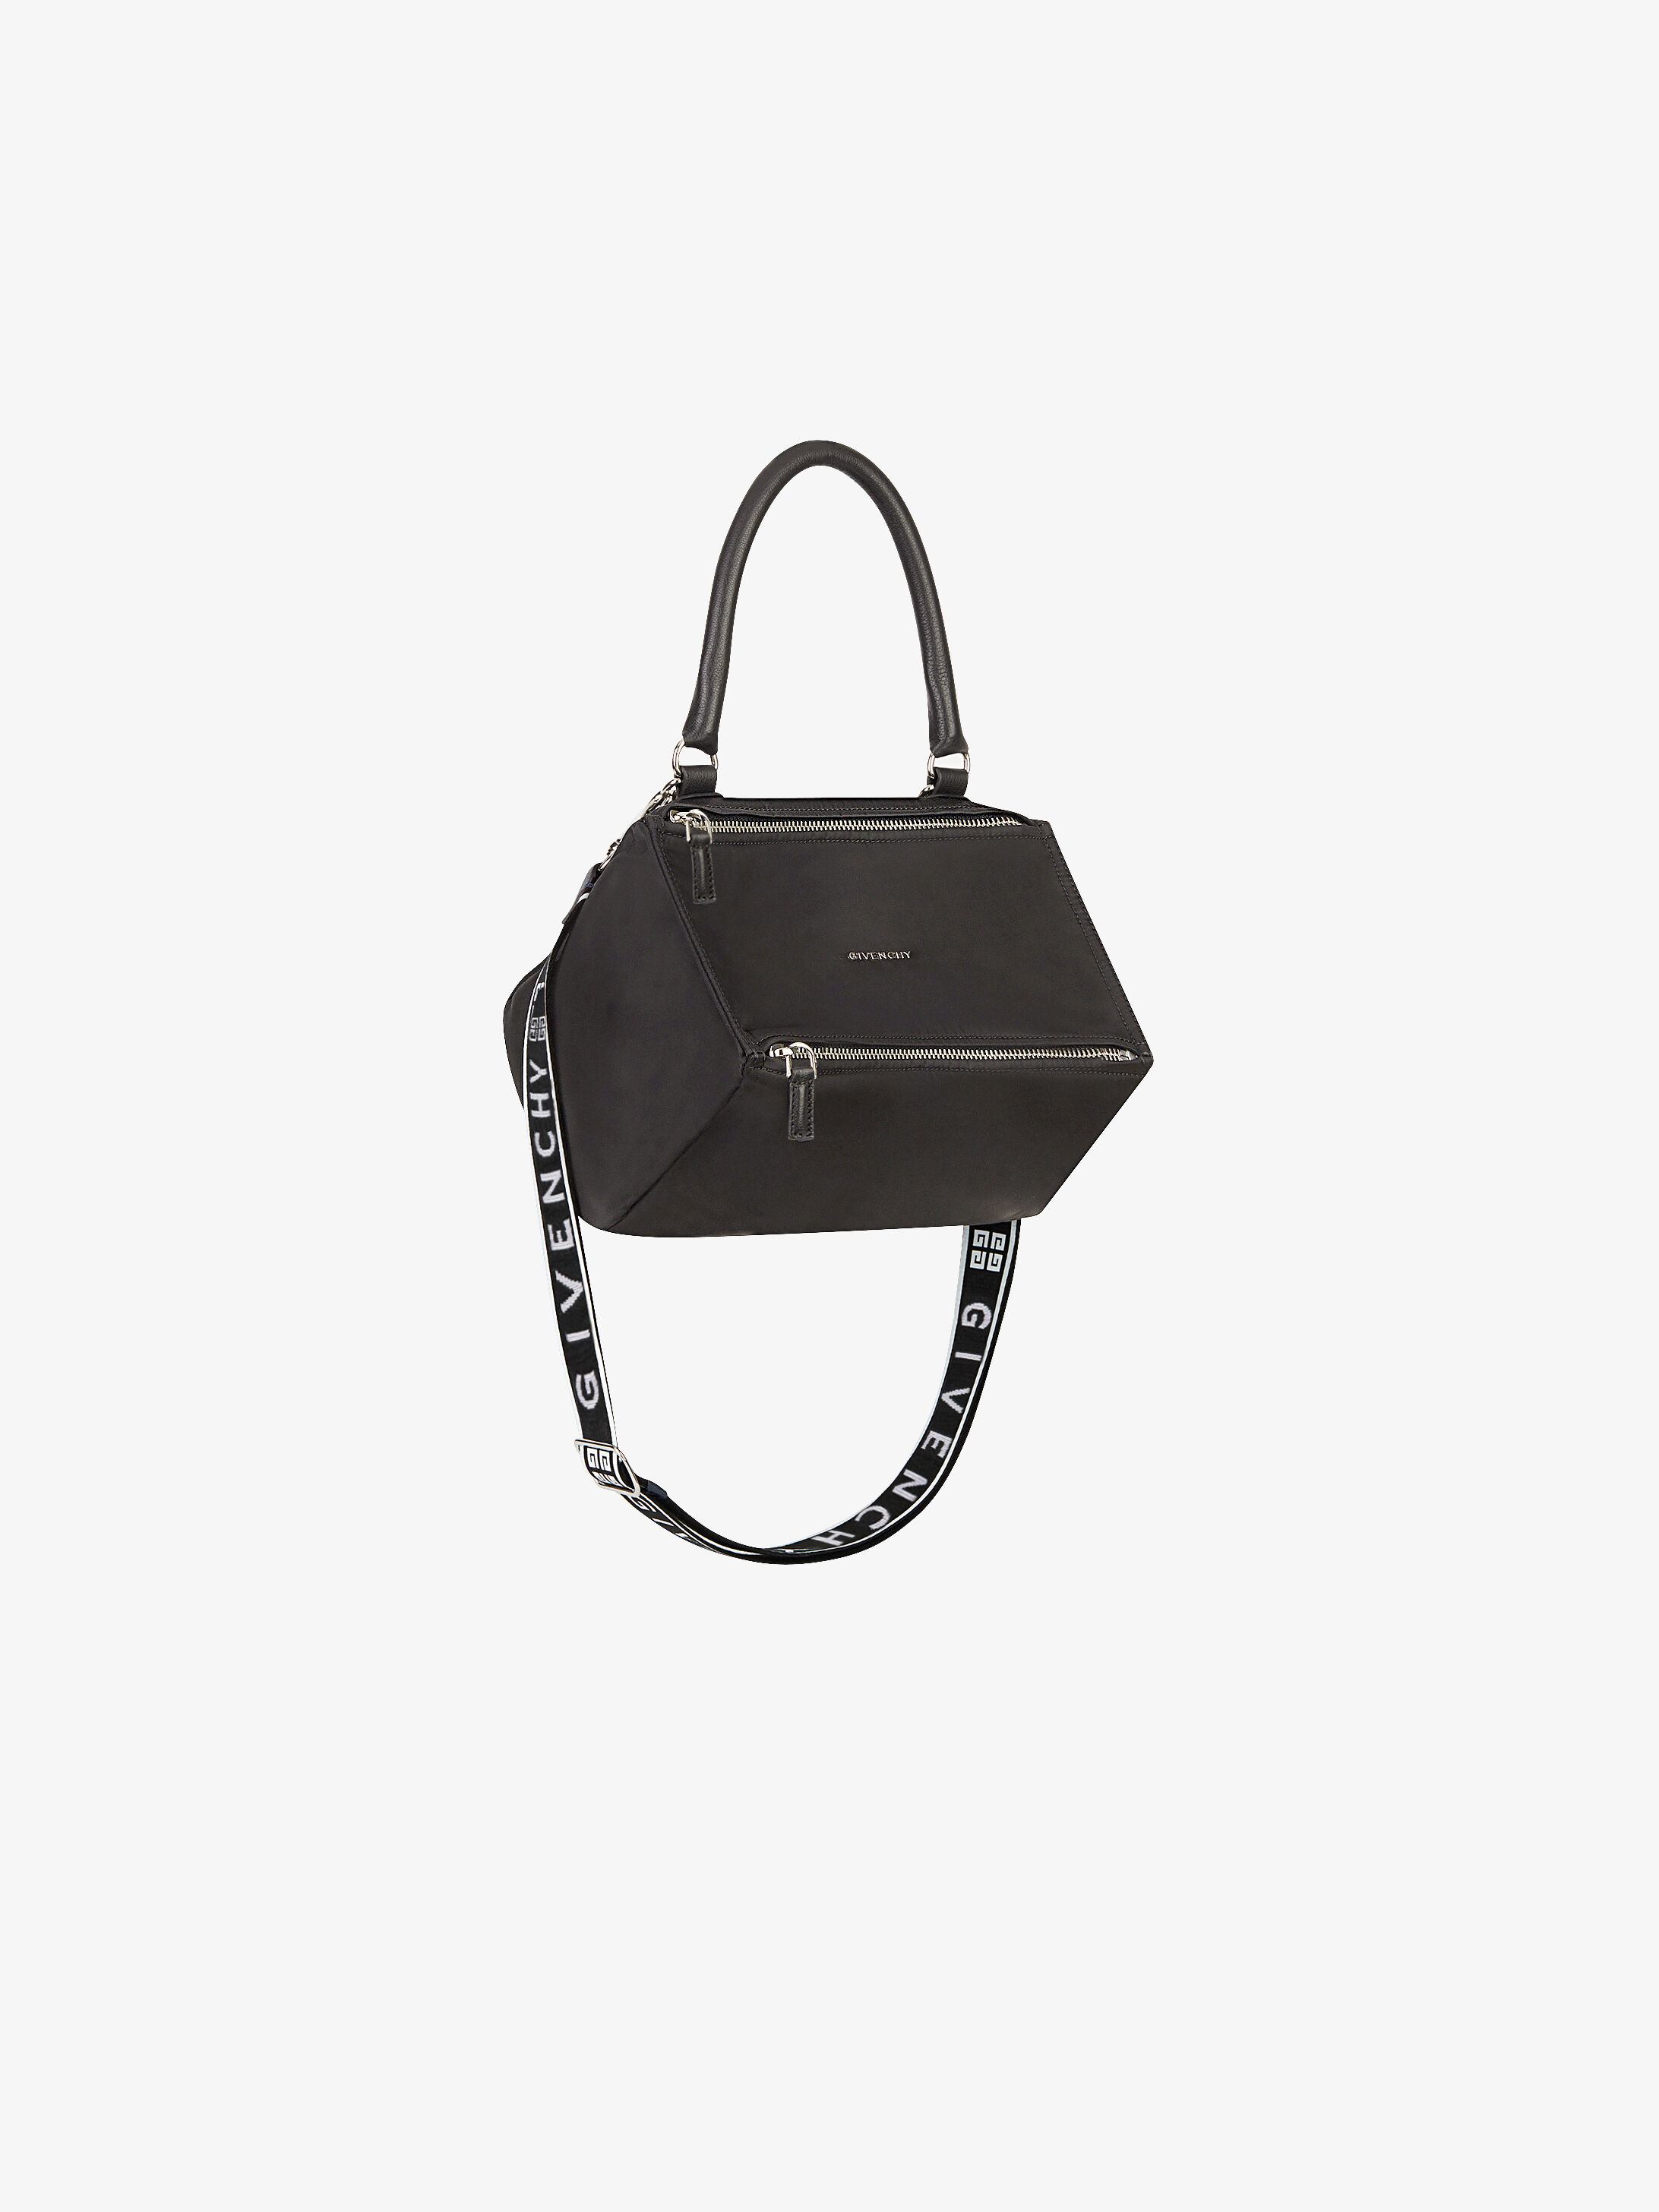 9c1d0be12d86f Women's Pandora collection by Givenchy. | GIVENCHY Paris